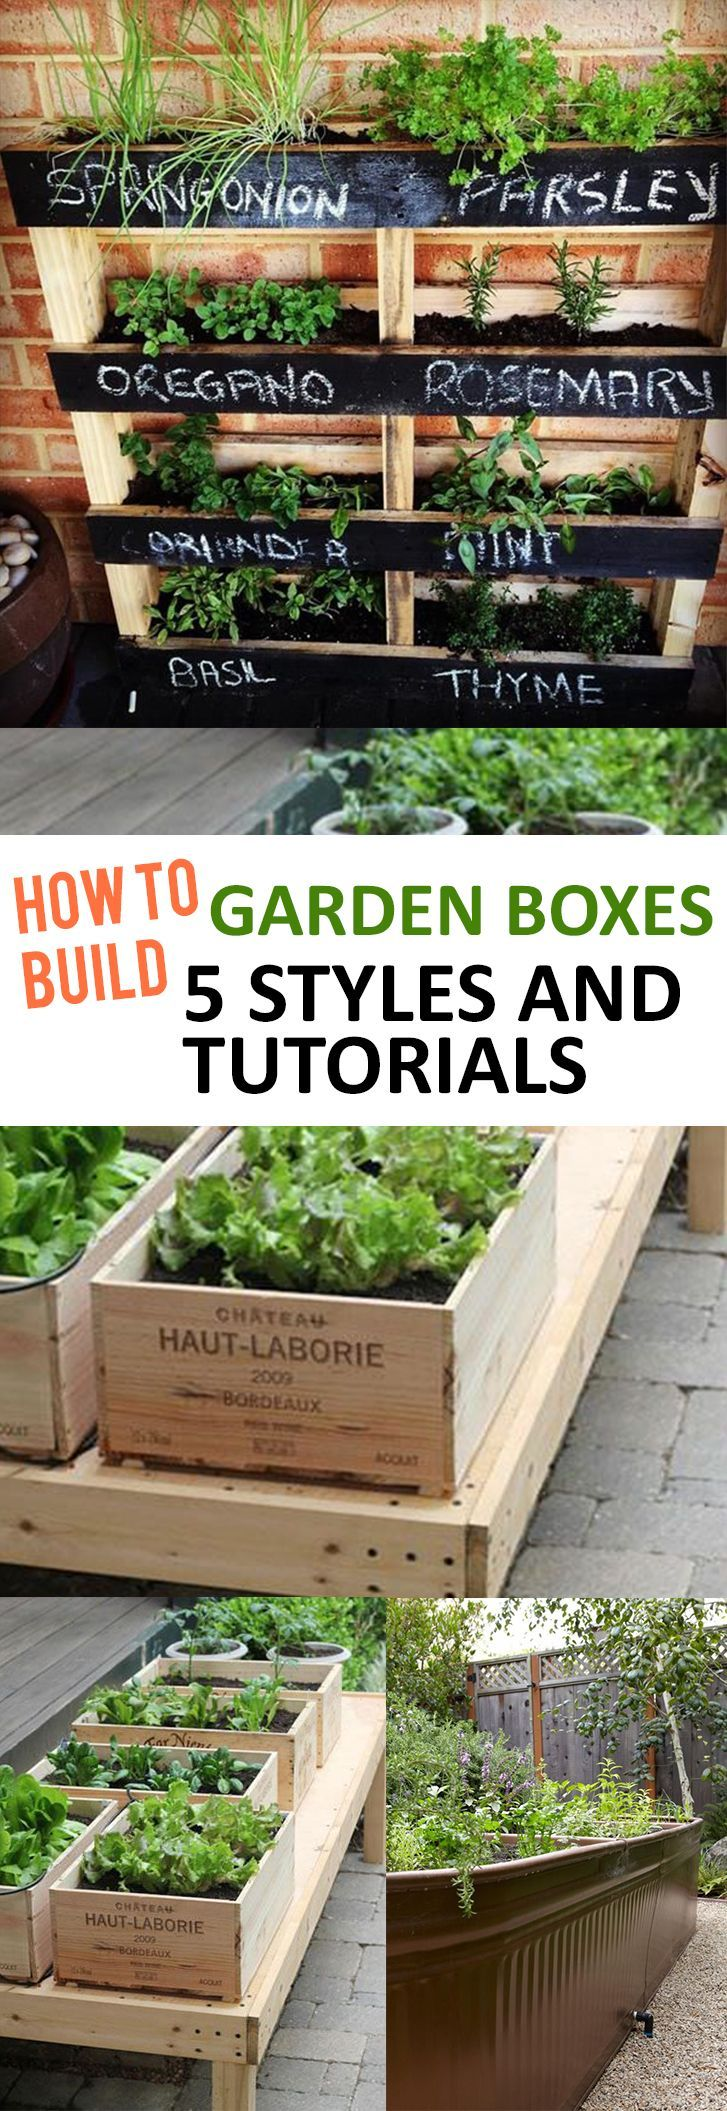 Gardening home garden garden hacks garden tips and for Gardening advice